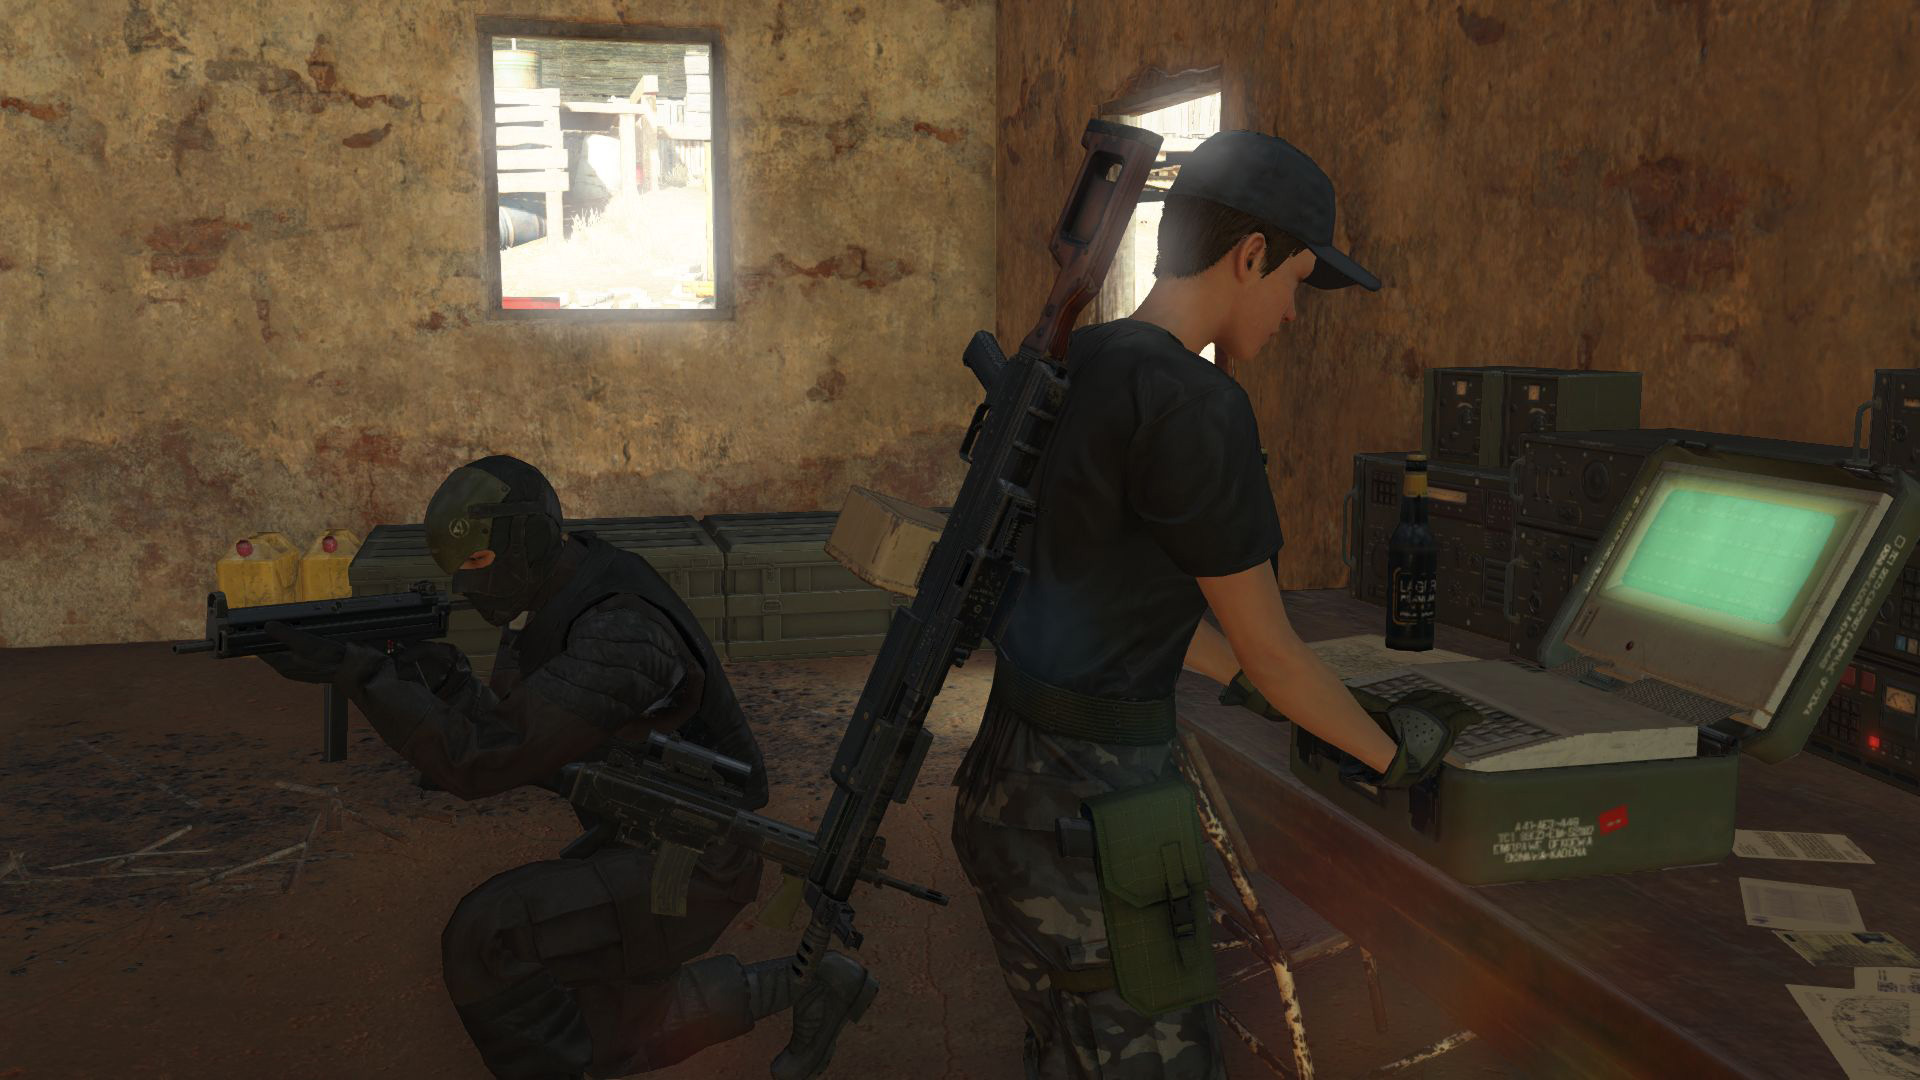 Metal-Gear-Online-Sabotage-Mode-1